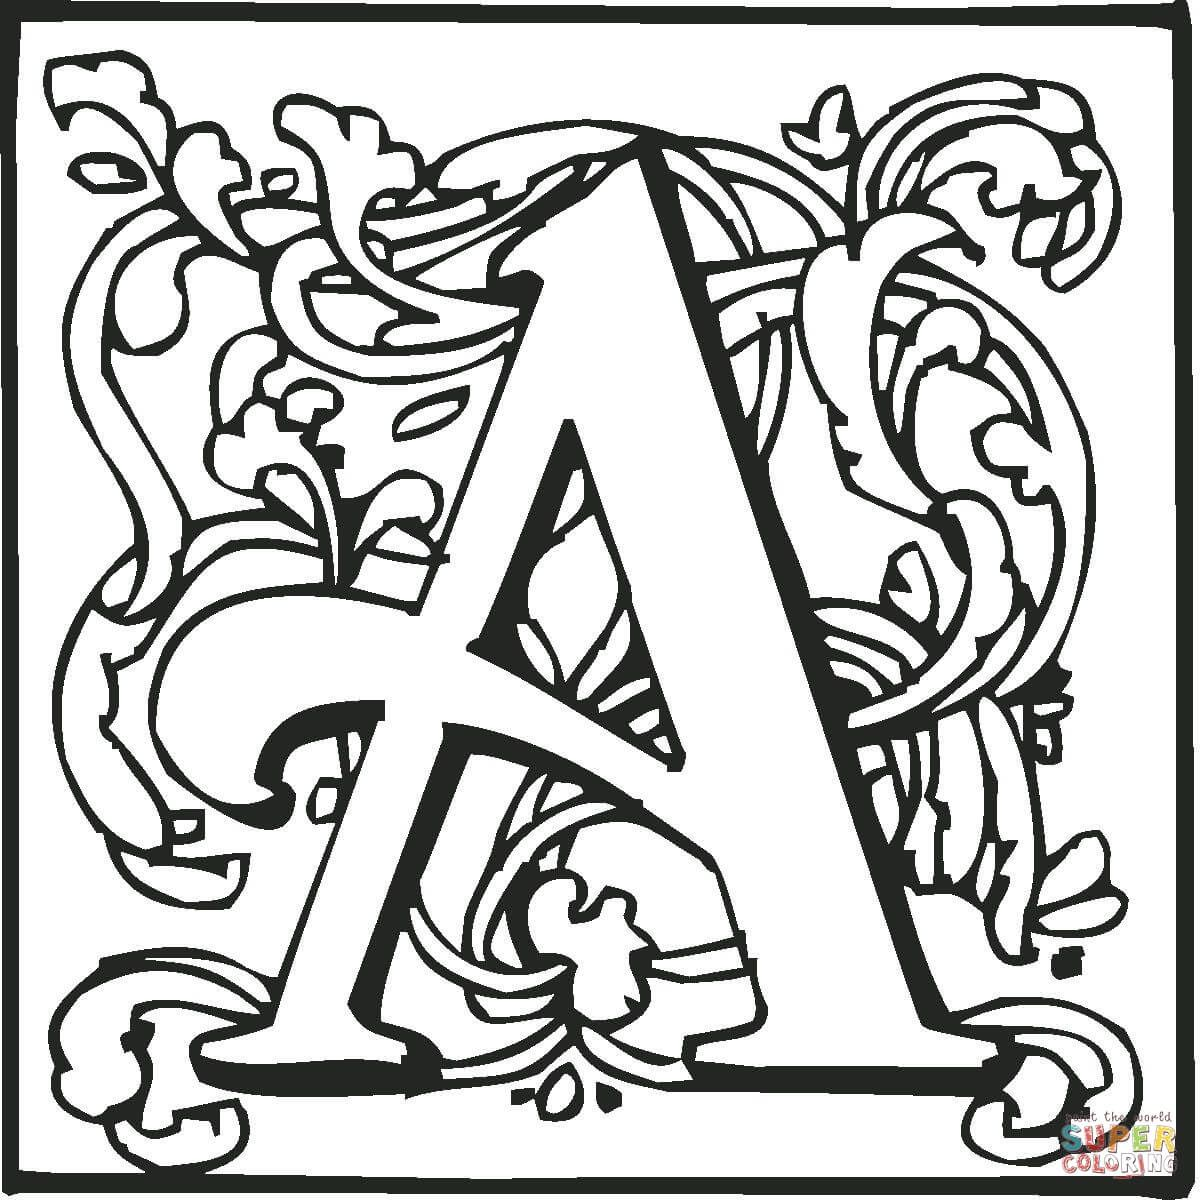 Letter A With Ornament Coloring Page From English Alphabet With Ornaments Categor Buchstaben Vorlagen Zum Ausdrucken Buchstabe A Schneemann Basteln Weihnachten